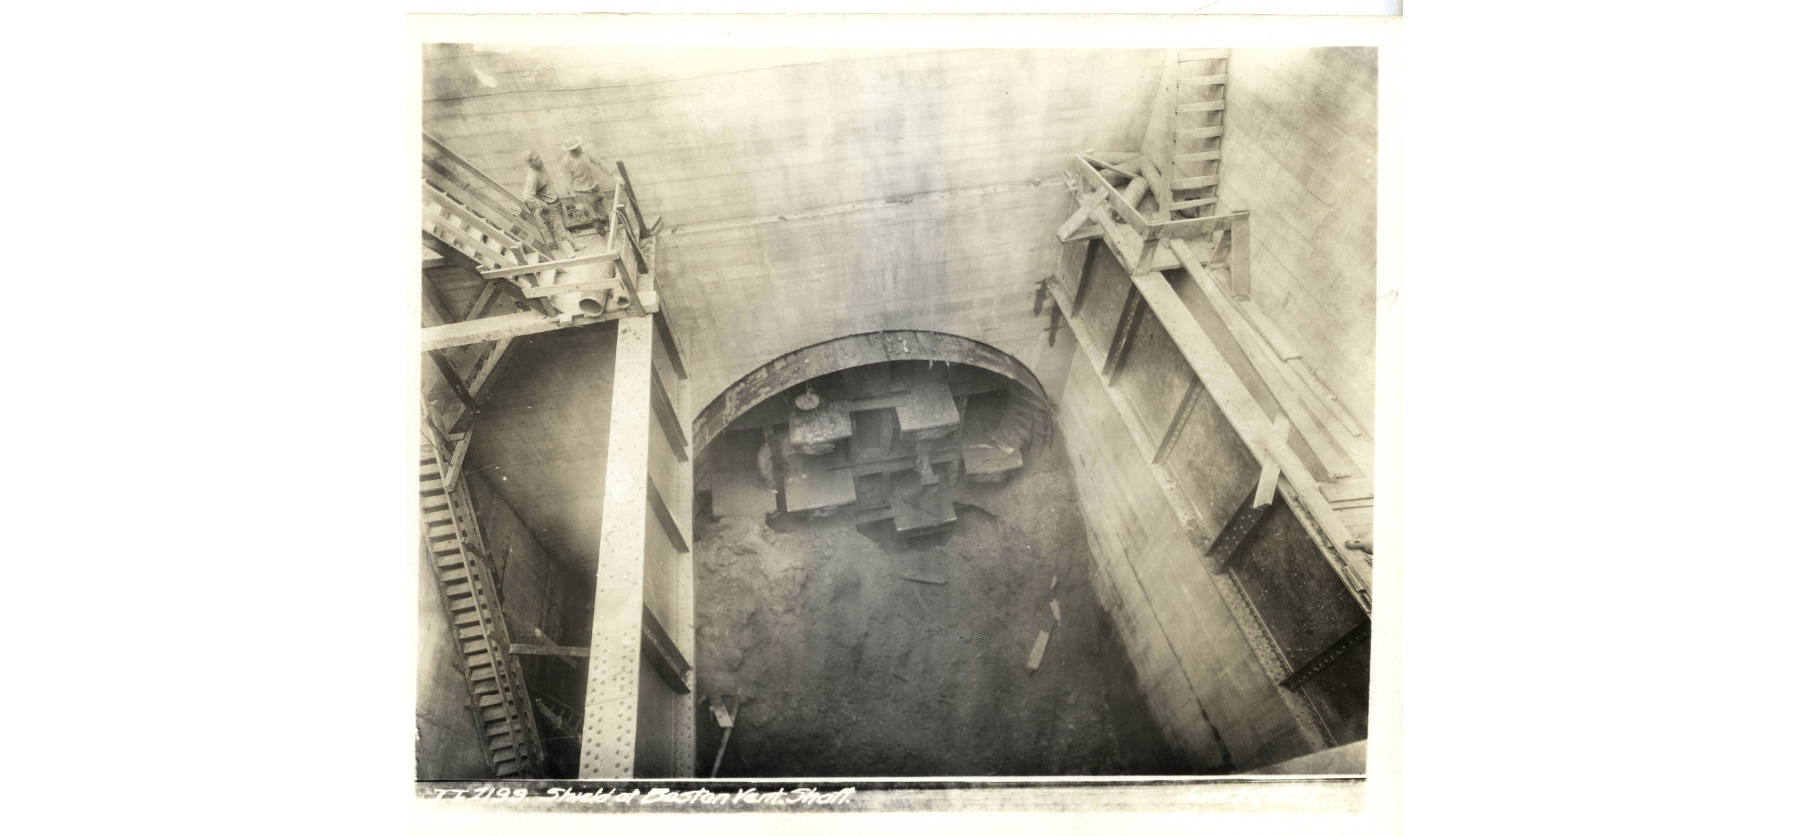 Black-and-white photo of the interior of the Boston Vent Shaft, with workers standing on a platform